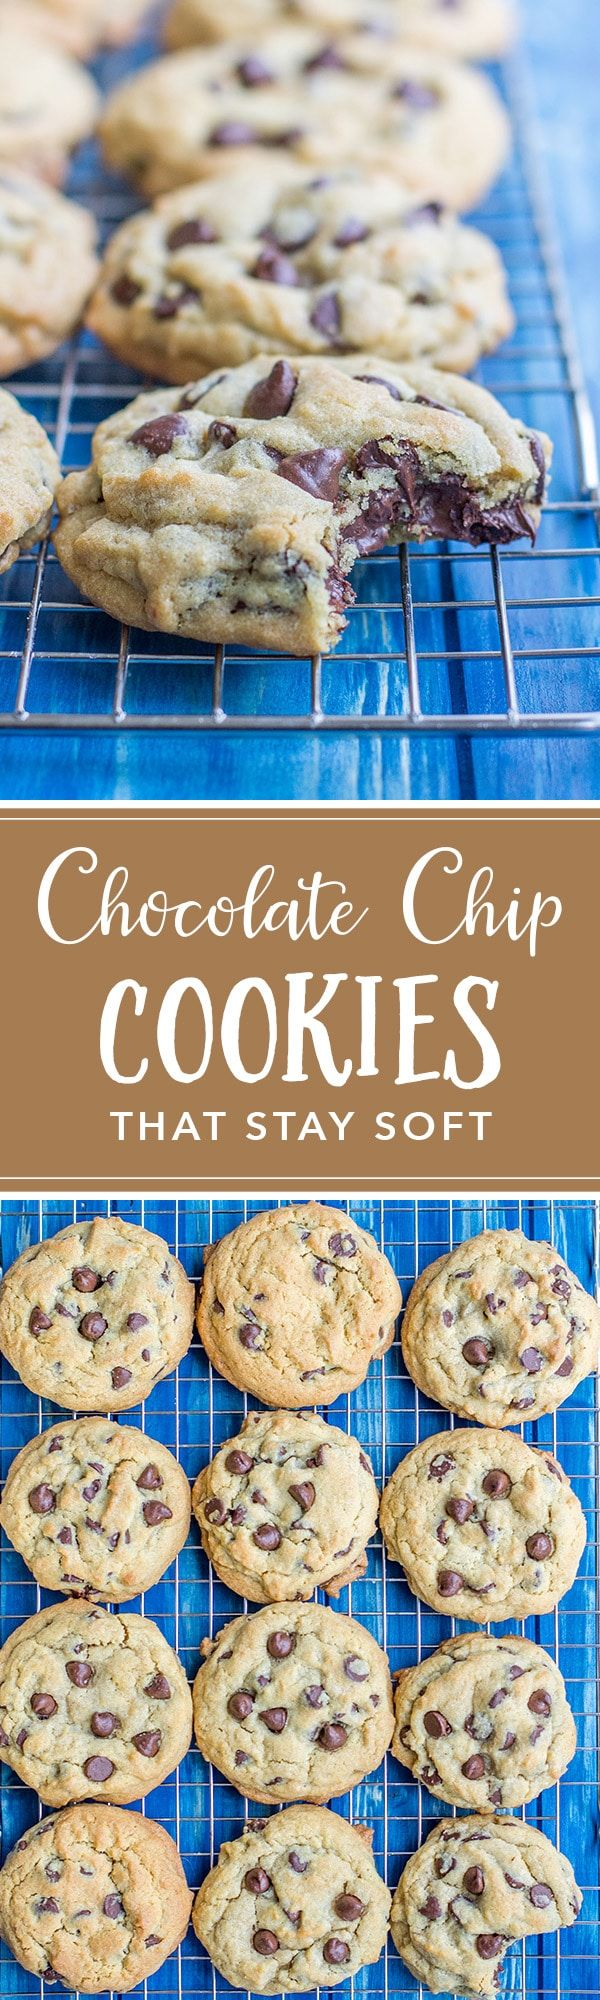 Stay Soft Chocolate Chip Cookies Recipe Soft Chocolate Chip Cookies Chewy Chocolate Chip Chewy Chocolate Chip Cookies